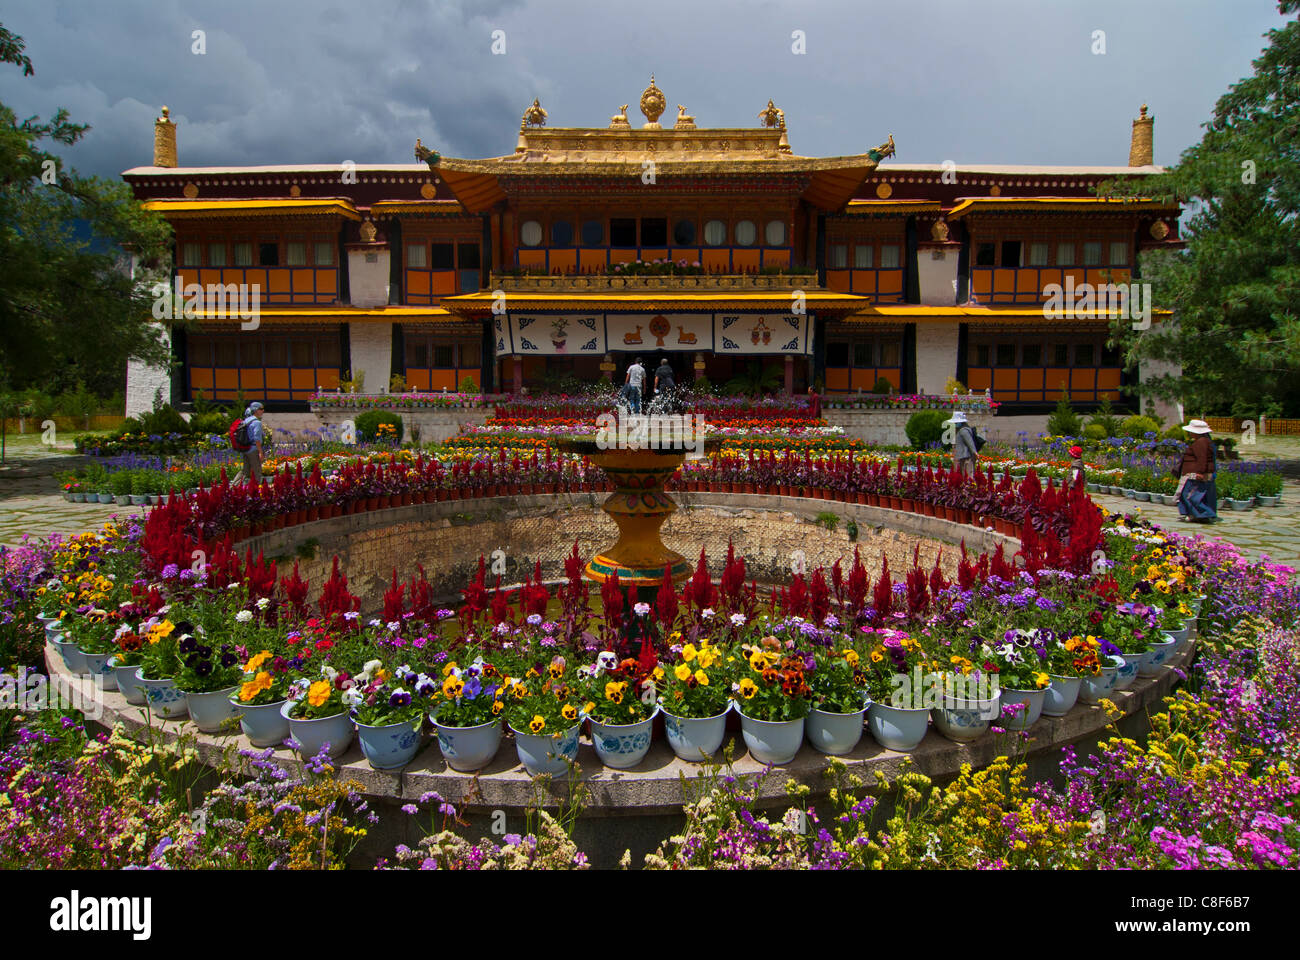 Colourful flowers at the Summer Palace, Lhasa, Tibet, China - Stock Image